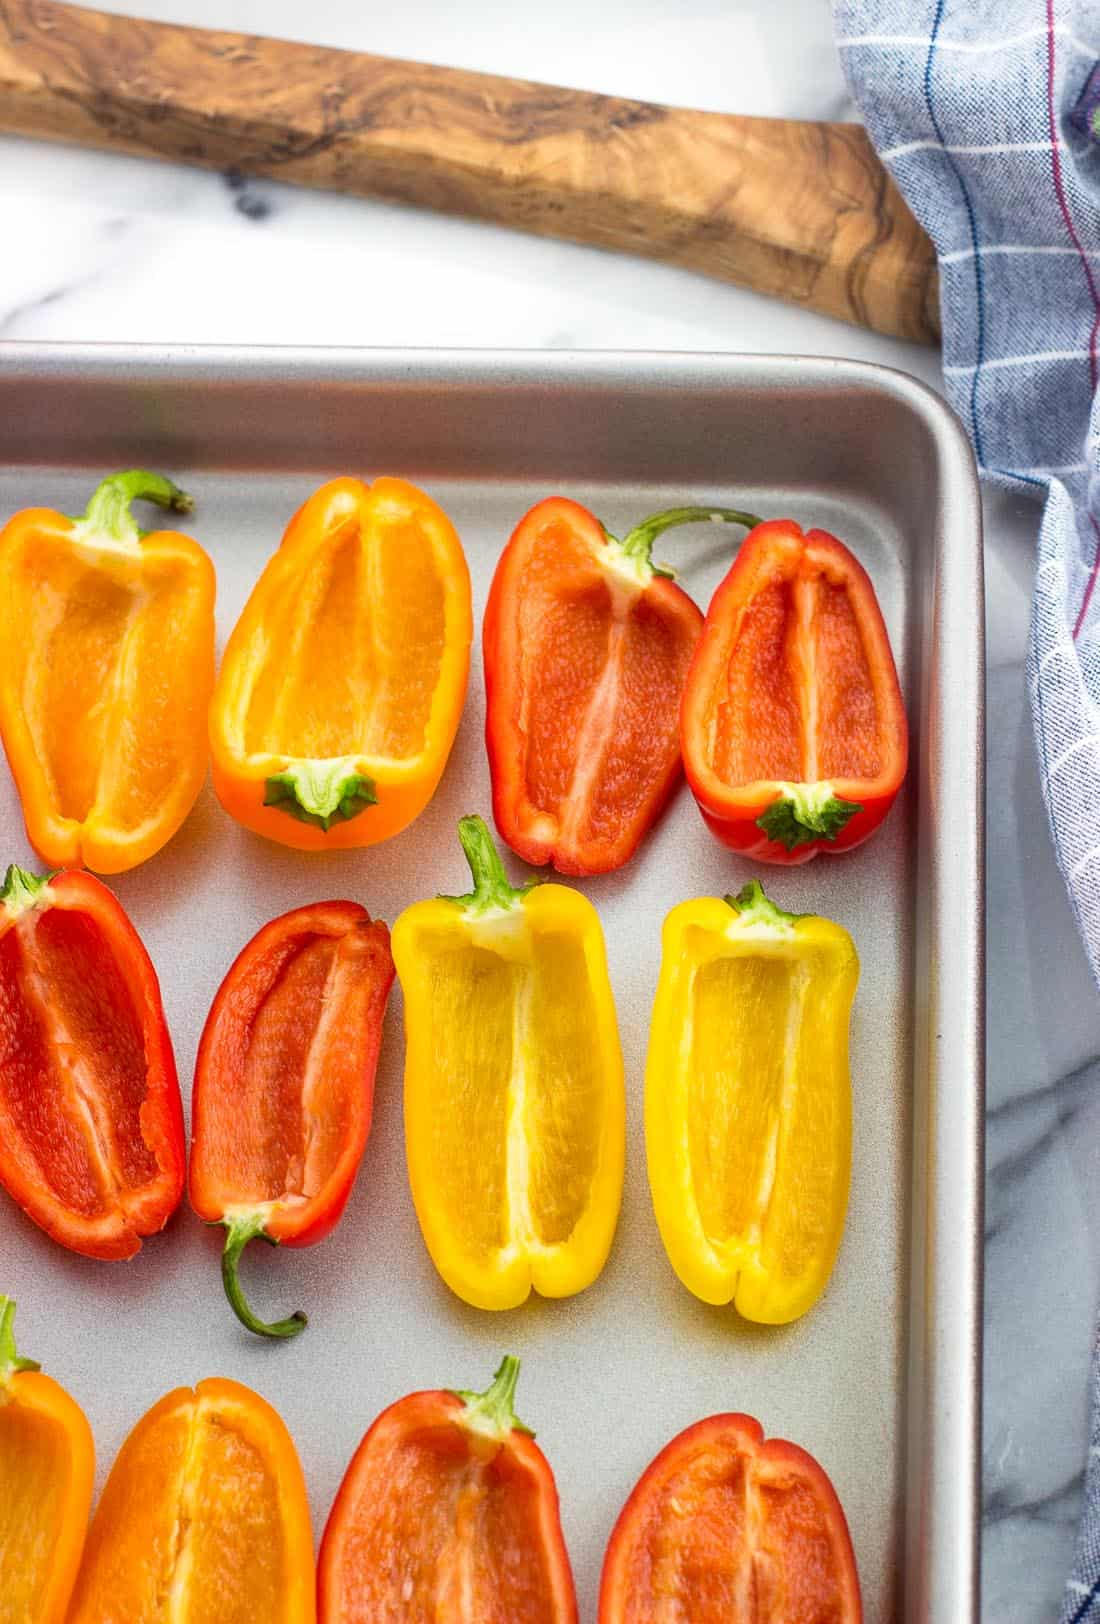 Mini sweet peppers cut into halves with the seeds removed, cut-side up on a baking sheet